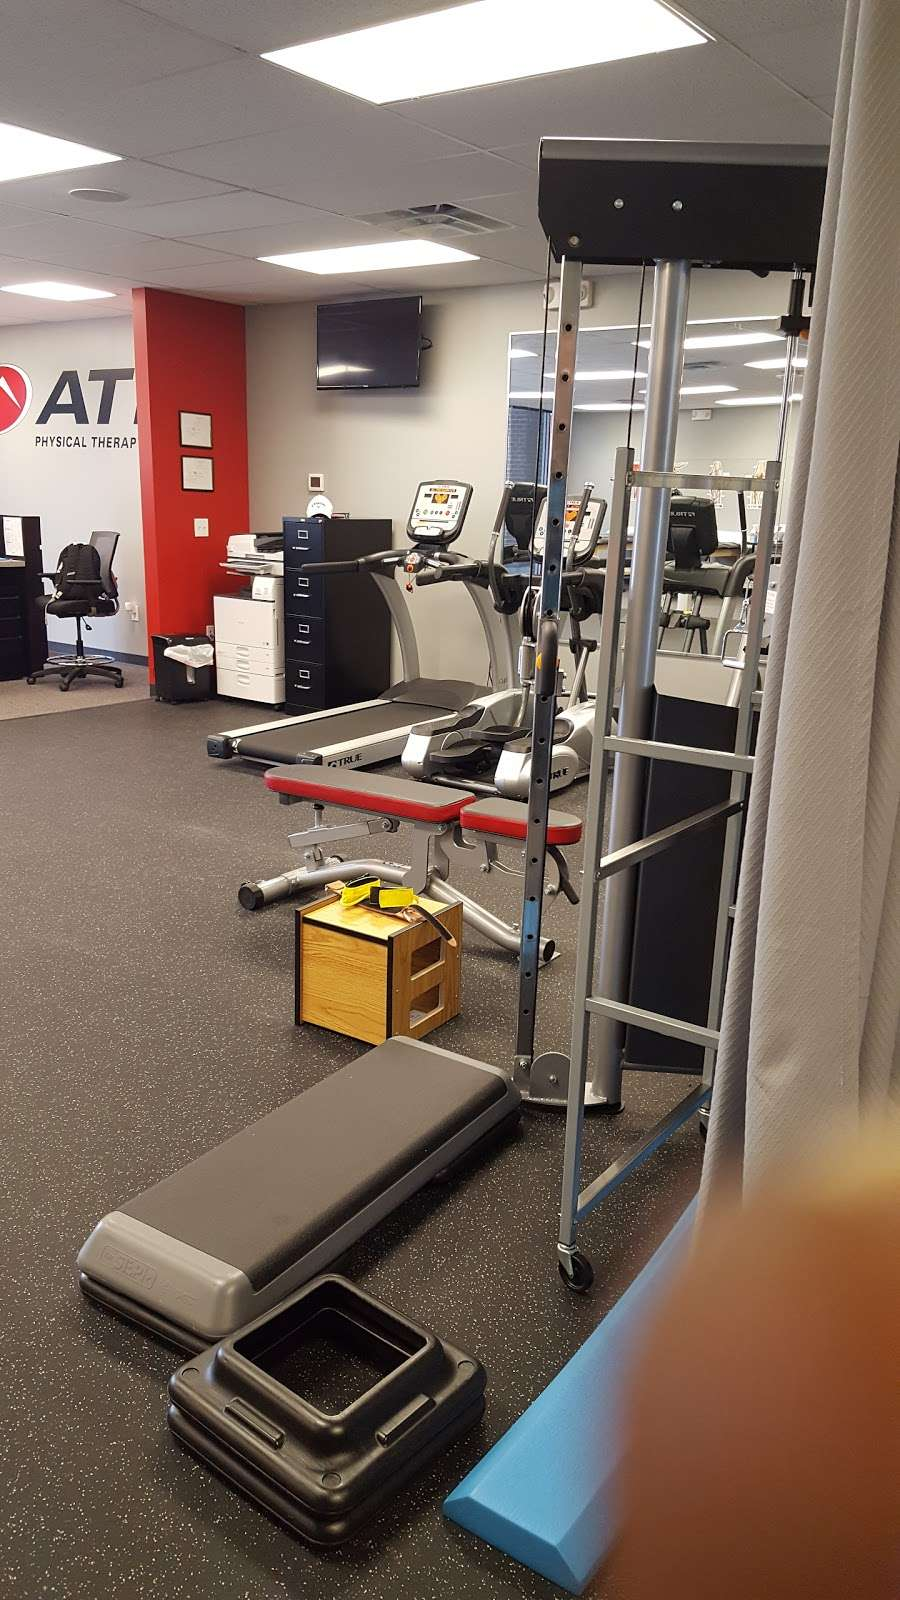 ATI Physical Therapy - health    Photo 6 of 10   Address: 10666 Campus Way S, Greater Upper Marlboro, MD 20774, USA   Phone: (240) 492-0643